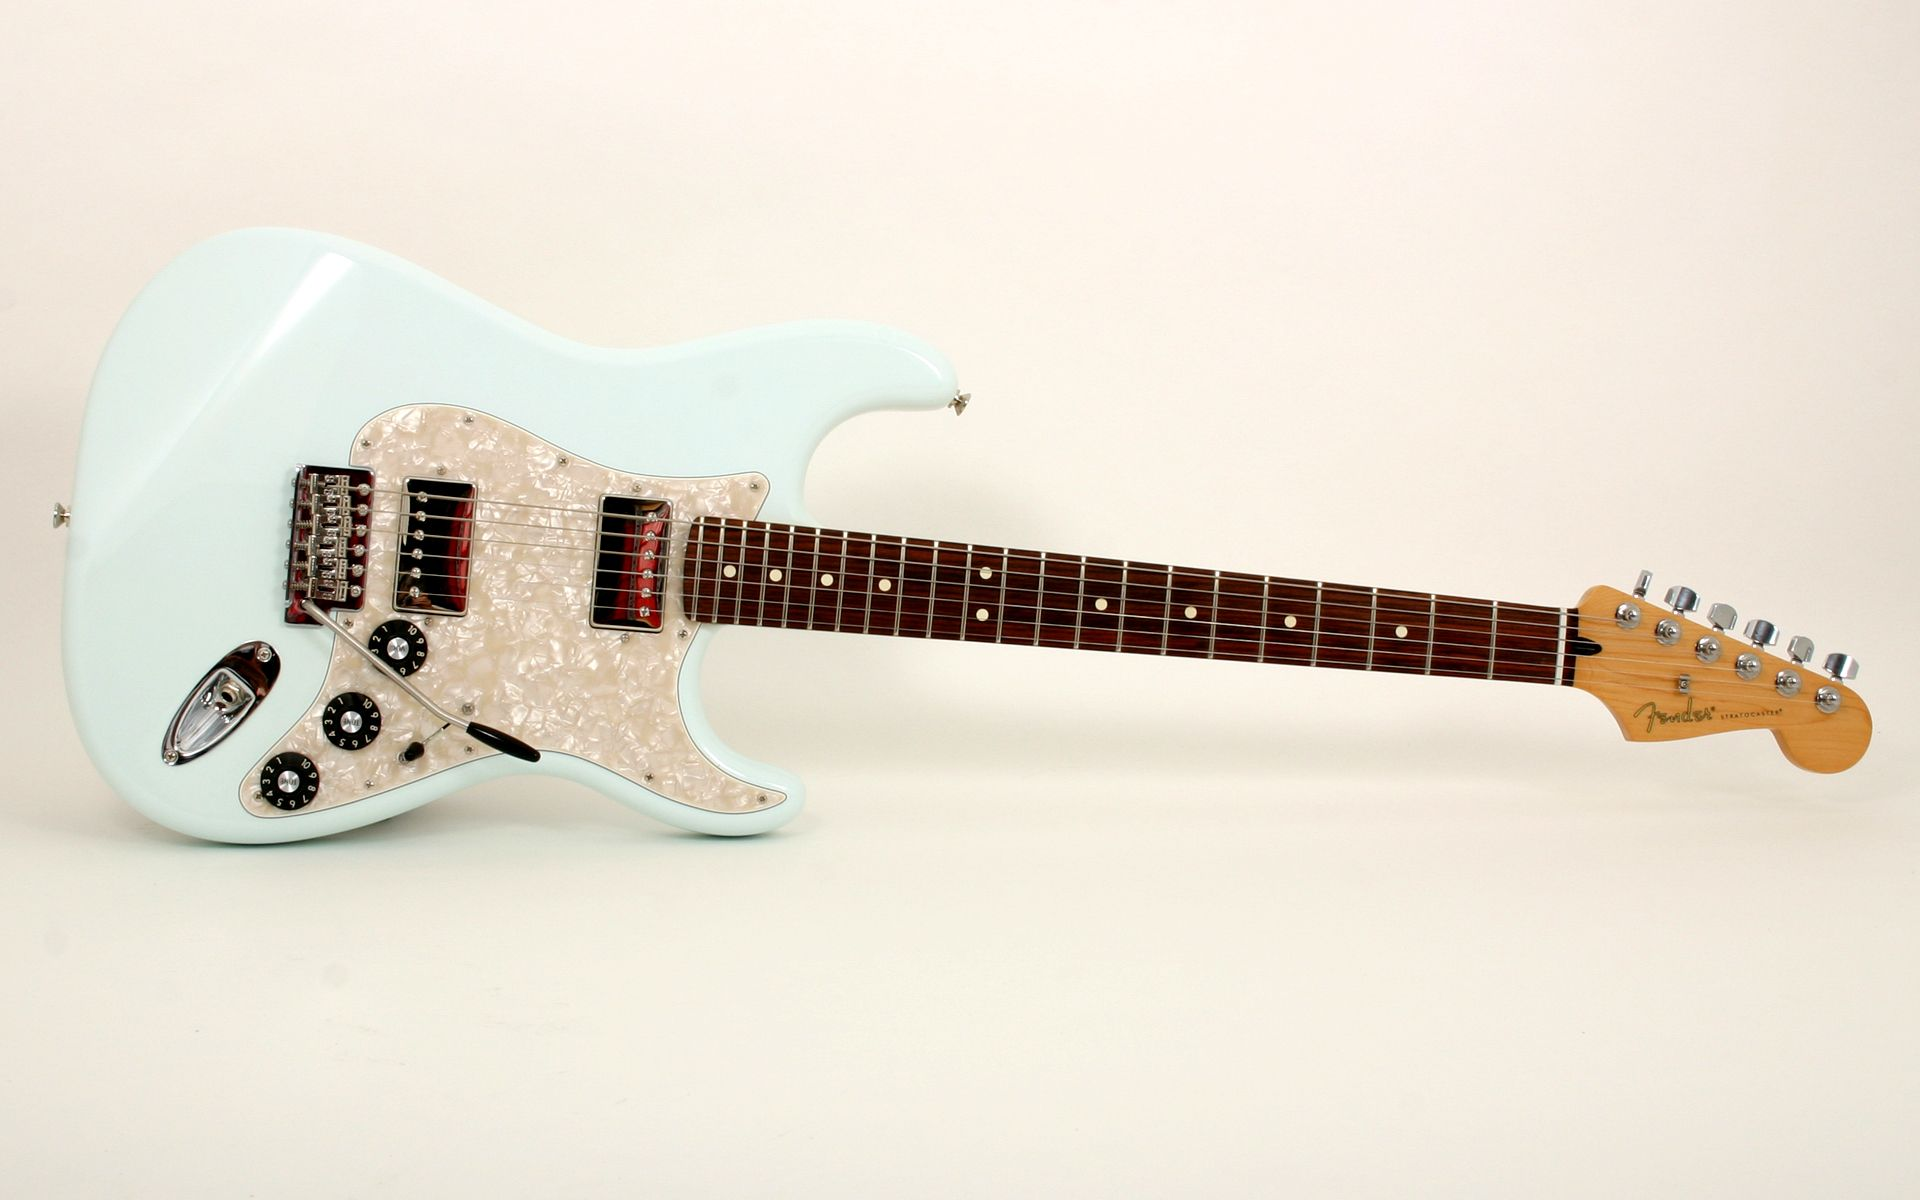 medium resolution of acme guitar works blacktop stratocaster hh rosewood fretboard sonic blue acme